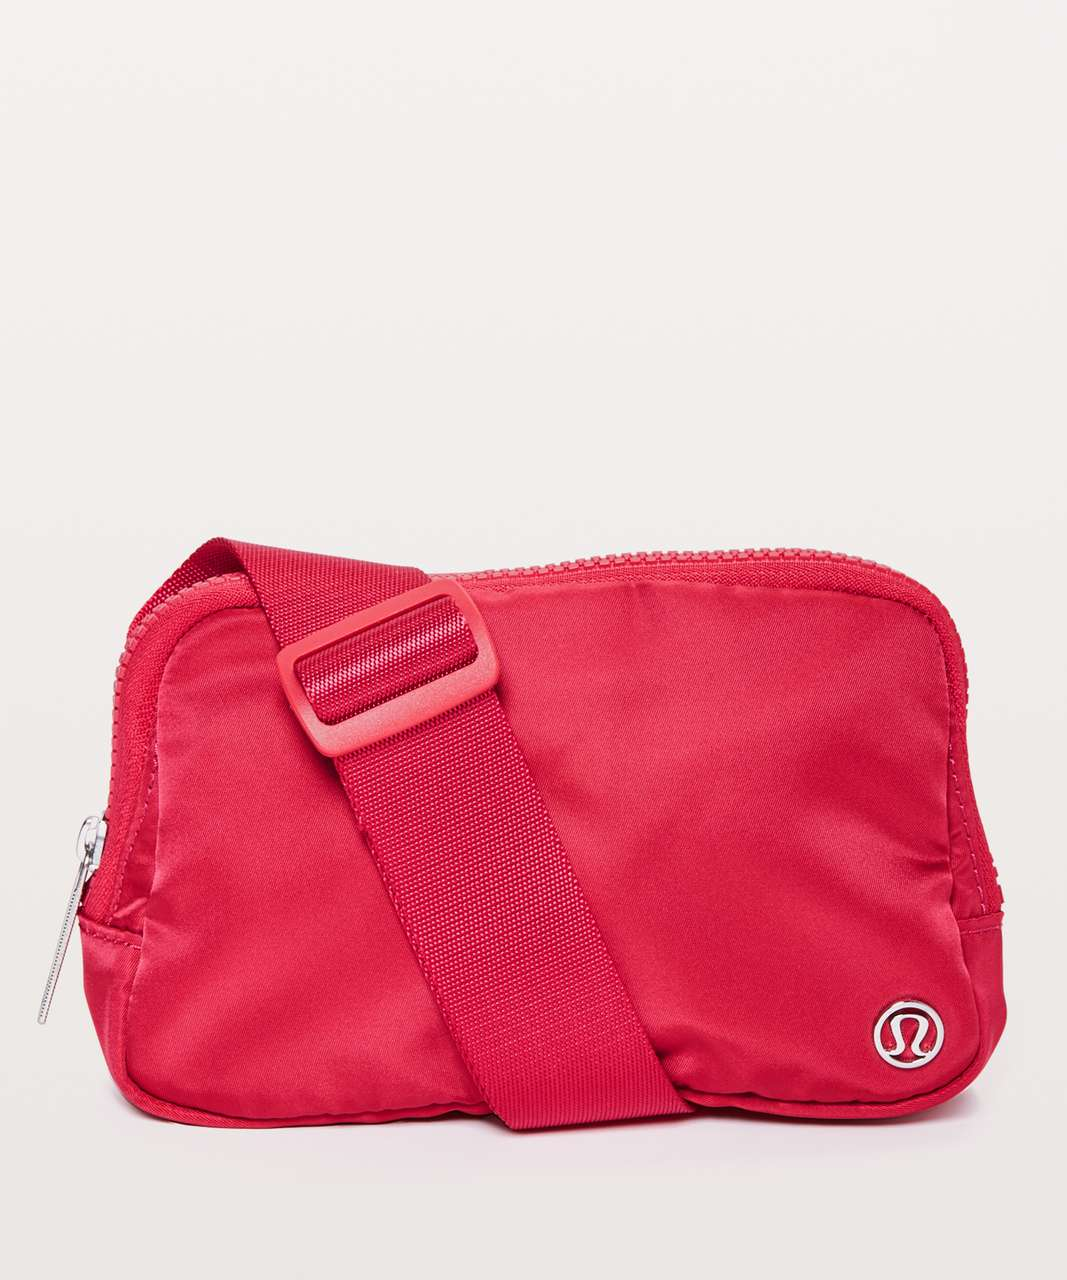 Lululemon Everywhere Belt Bag *1L - Fuchsia Pink